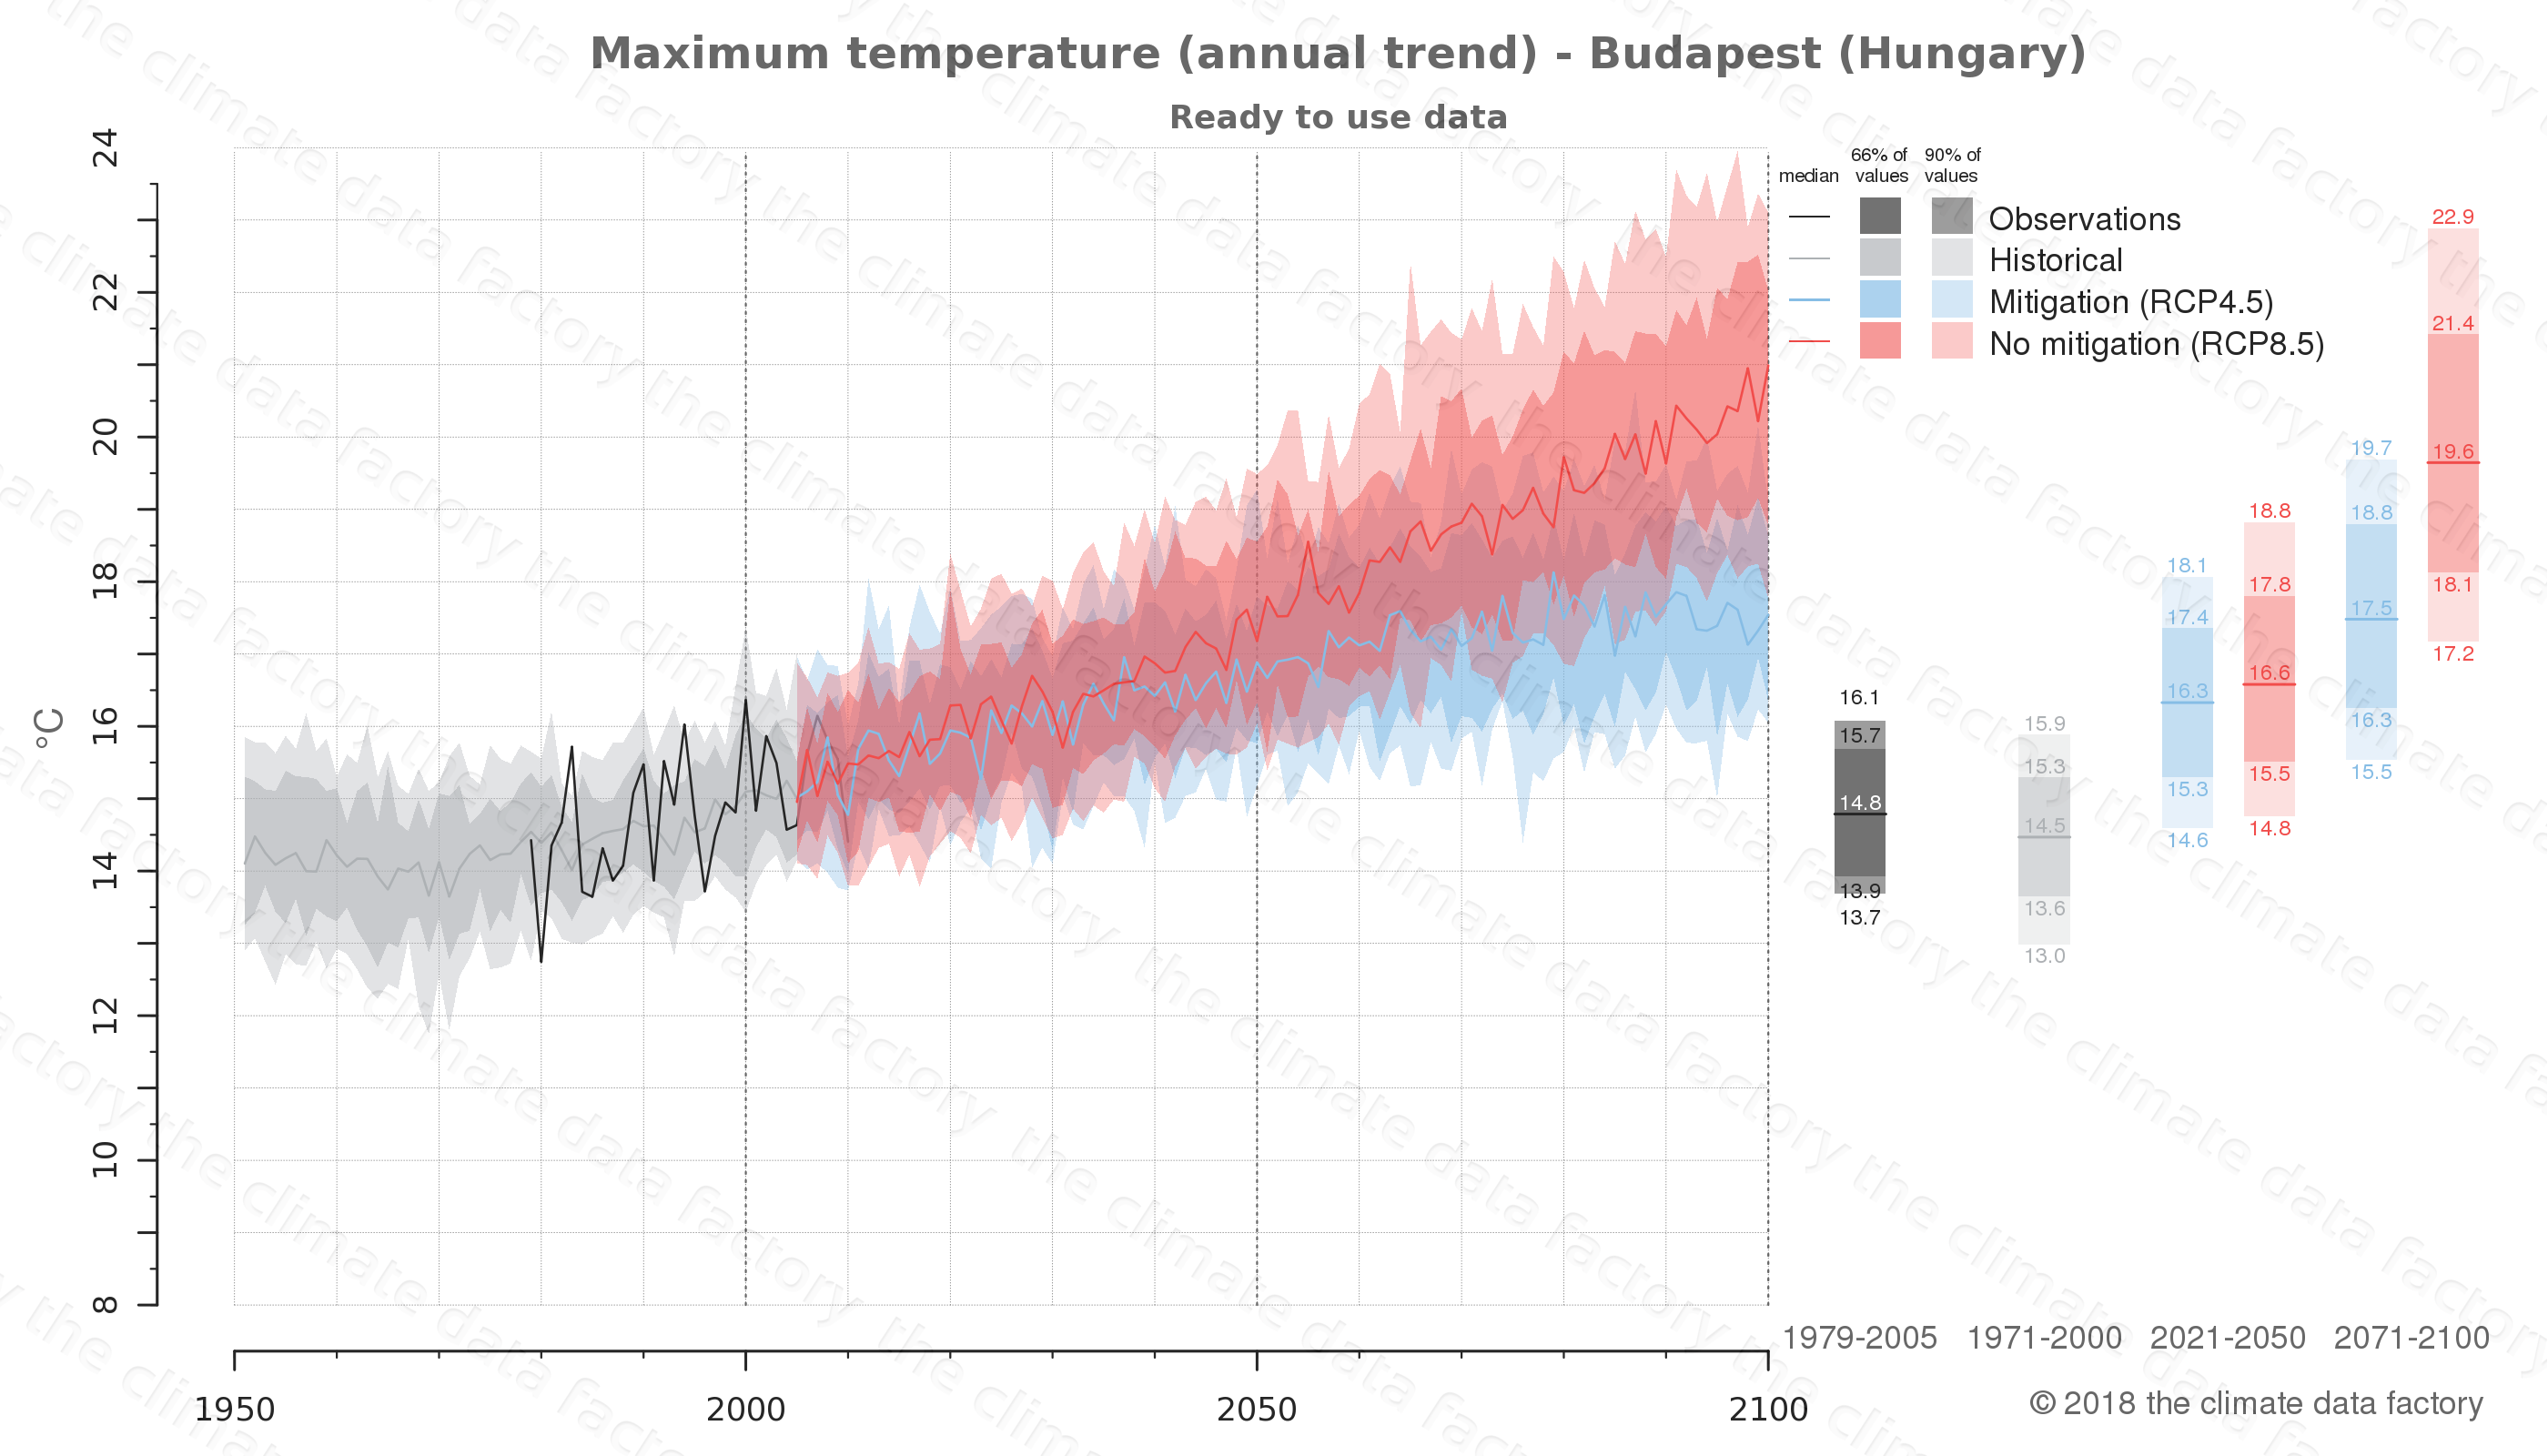 climate change data policy adaptation climate graph city data maximum-temperature budapest hungary